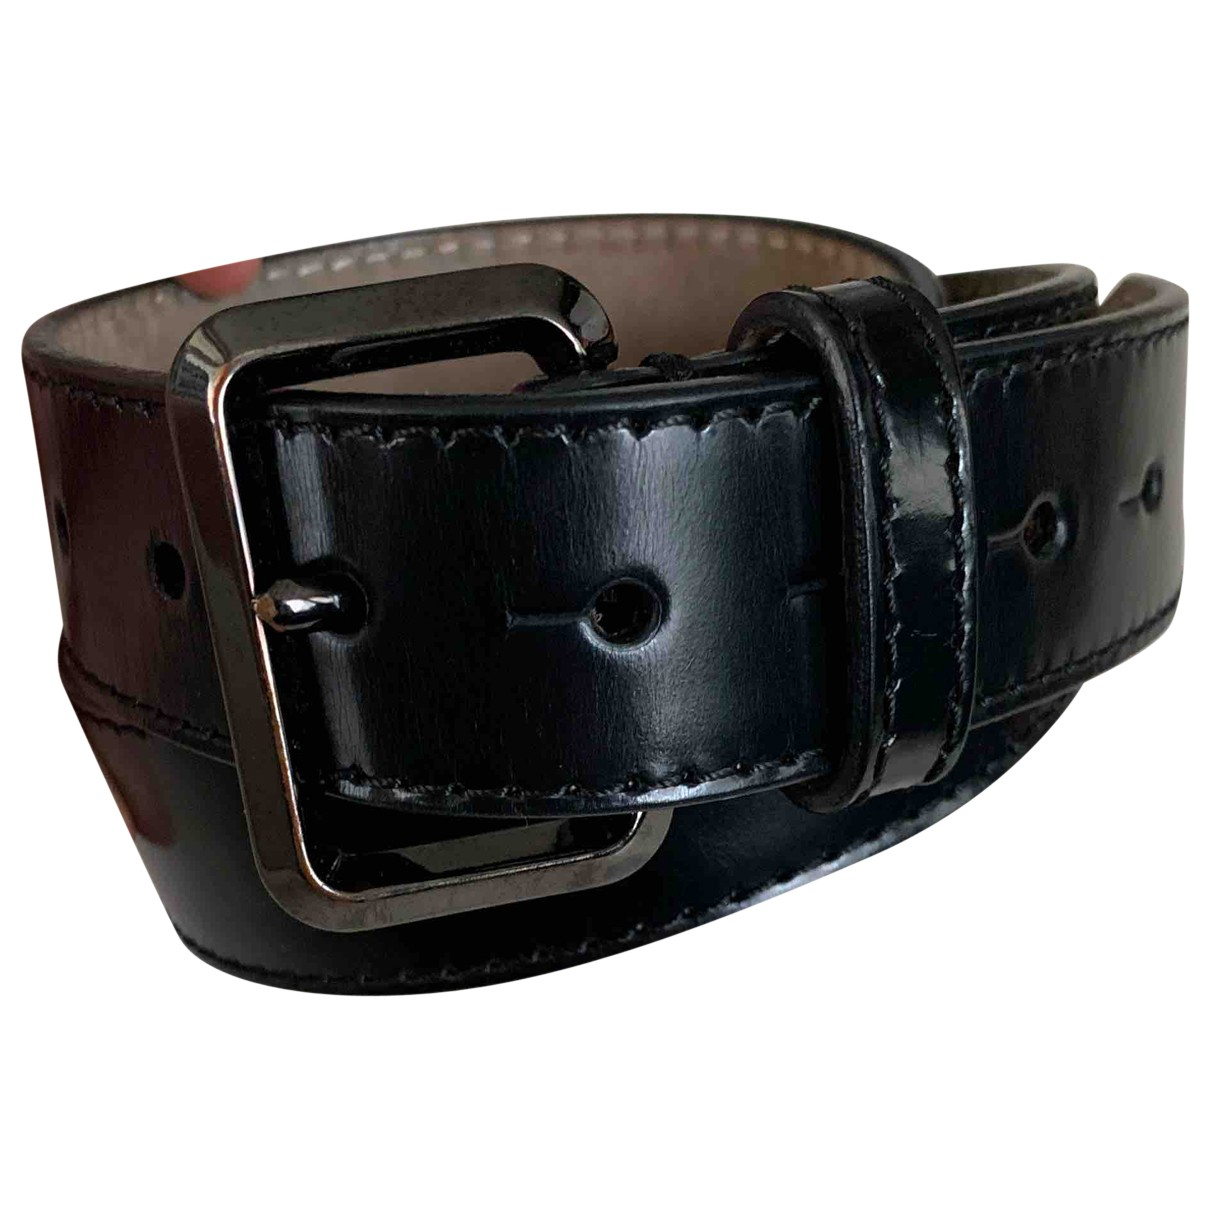 Burberry N Black Leather belt for Women 80 cm